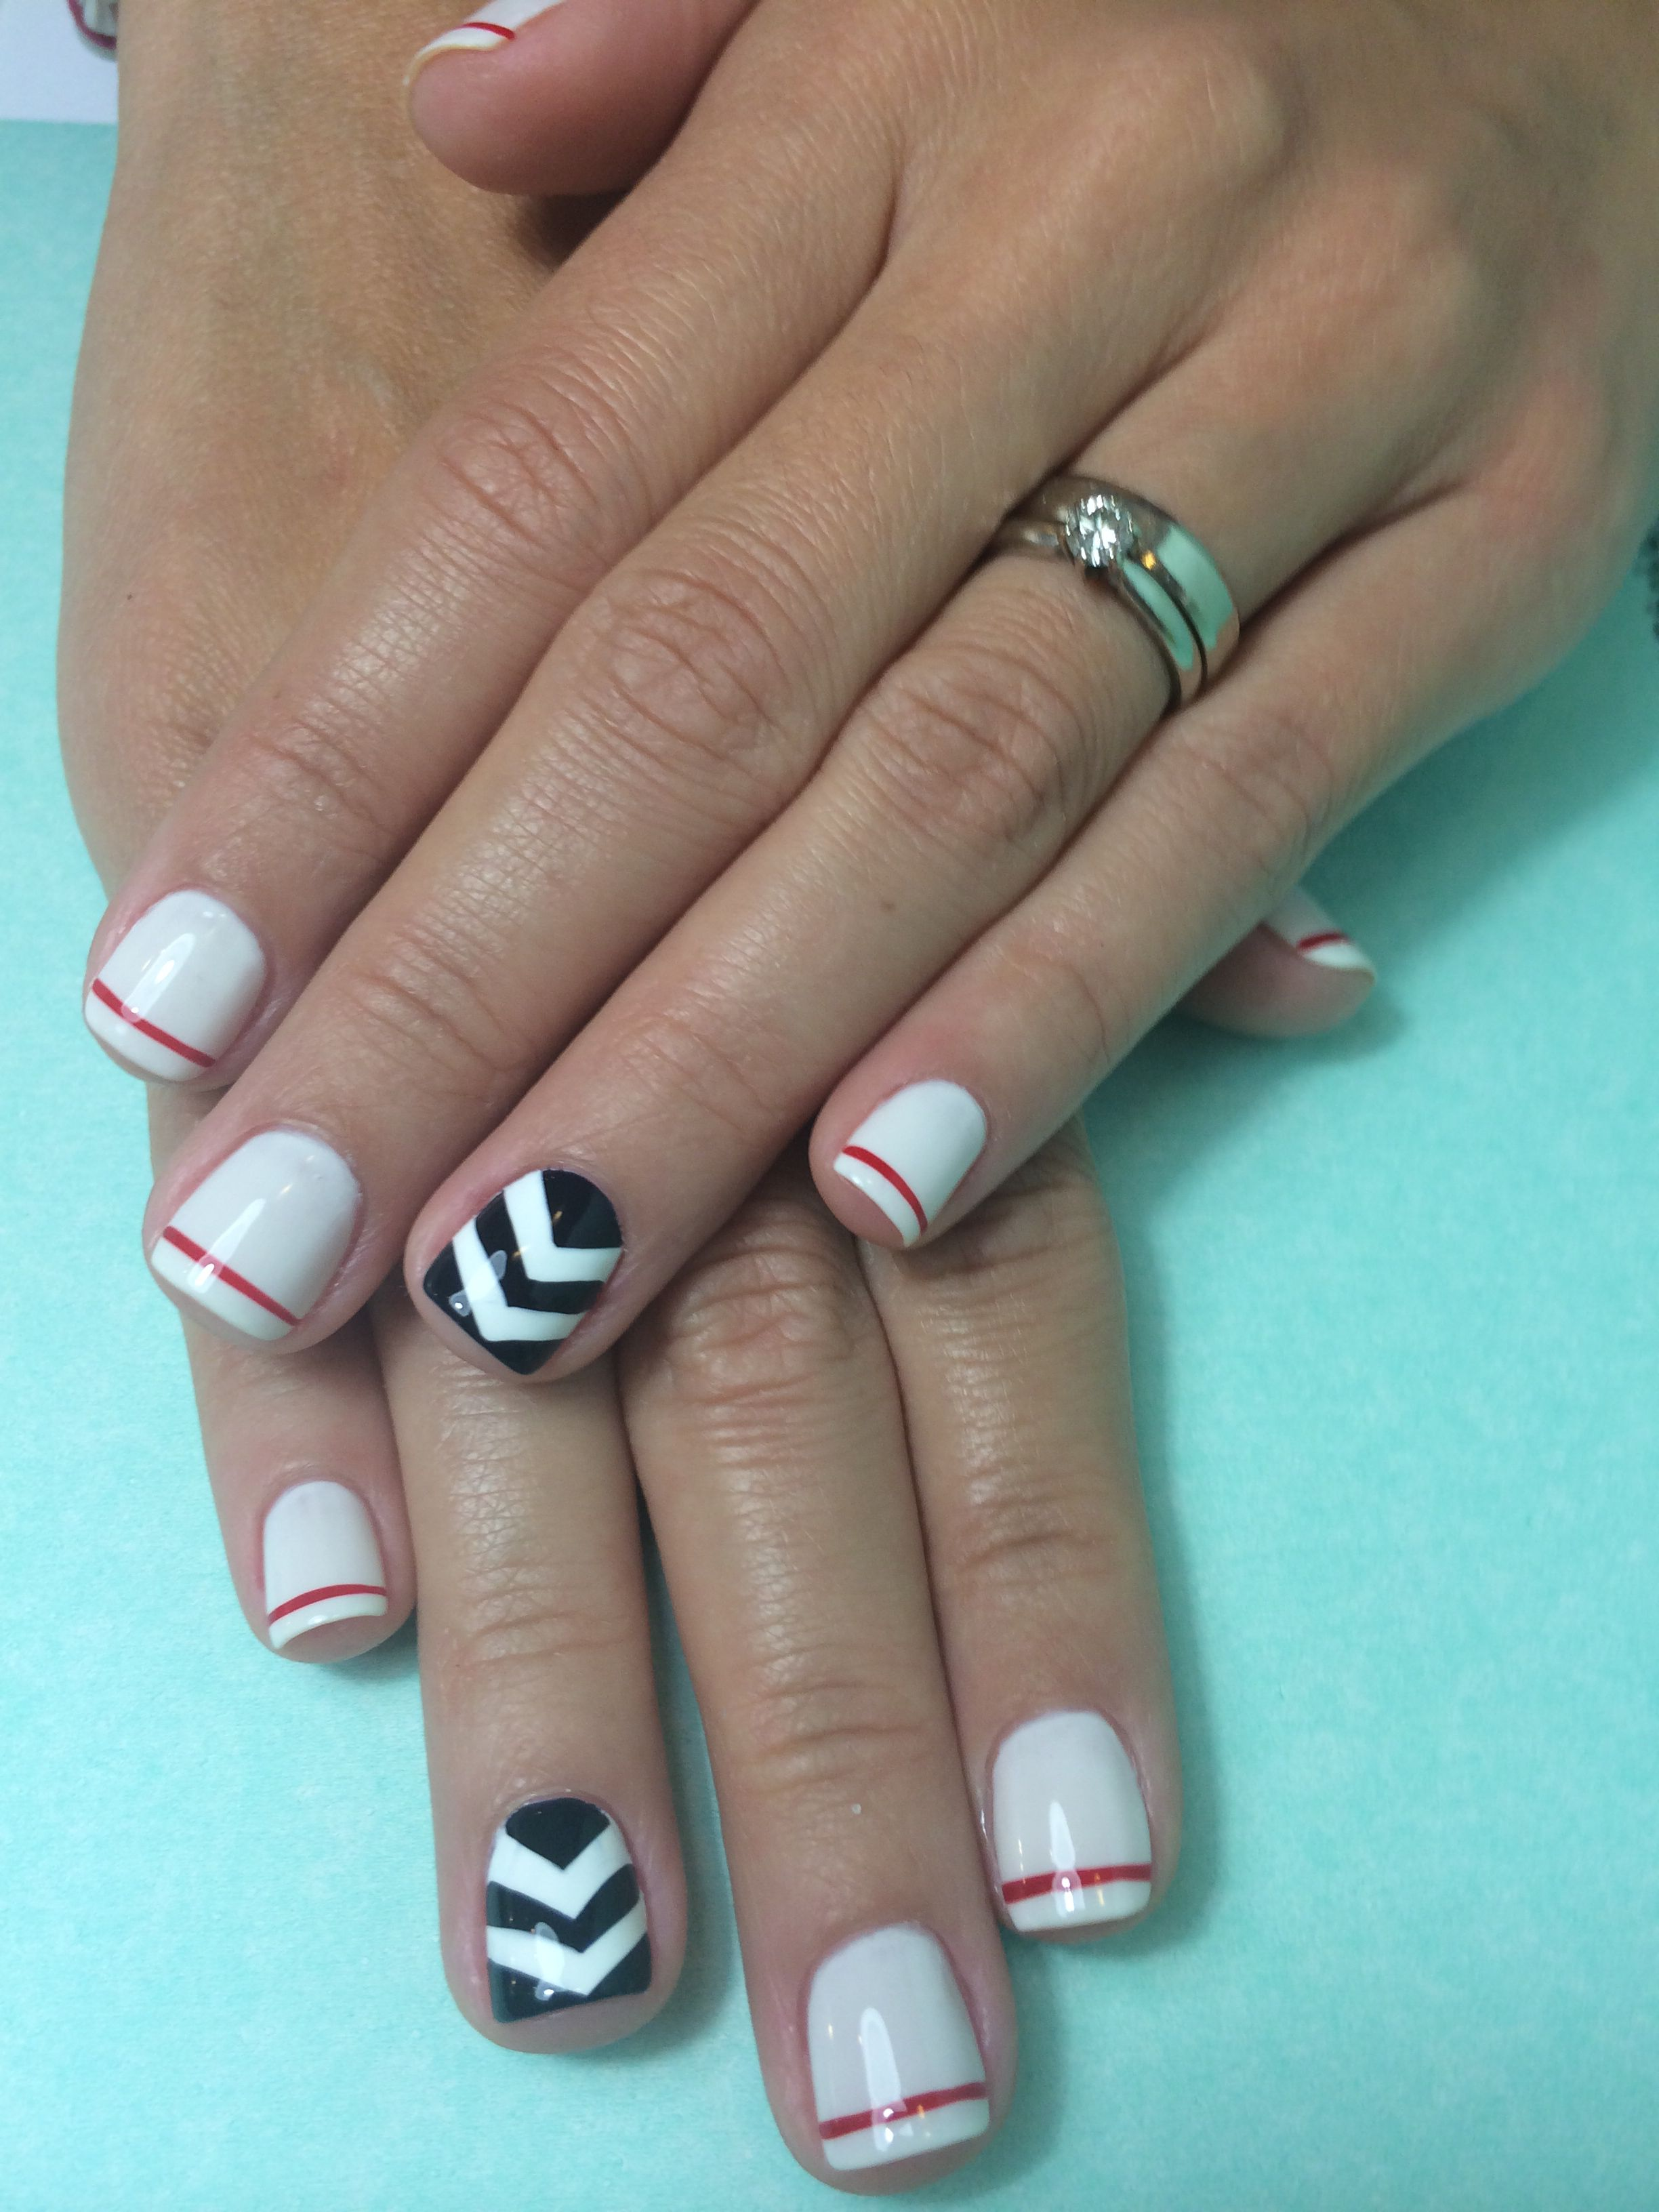 About baby boomer nail art tutorial by nded on pinterest nail art - Simple Nail Art For Short Nails Dark Blue And Red Lines